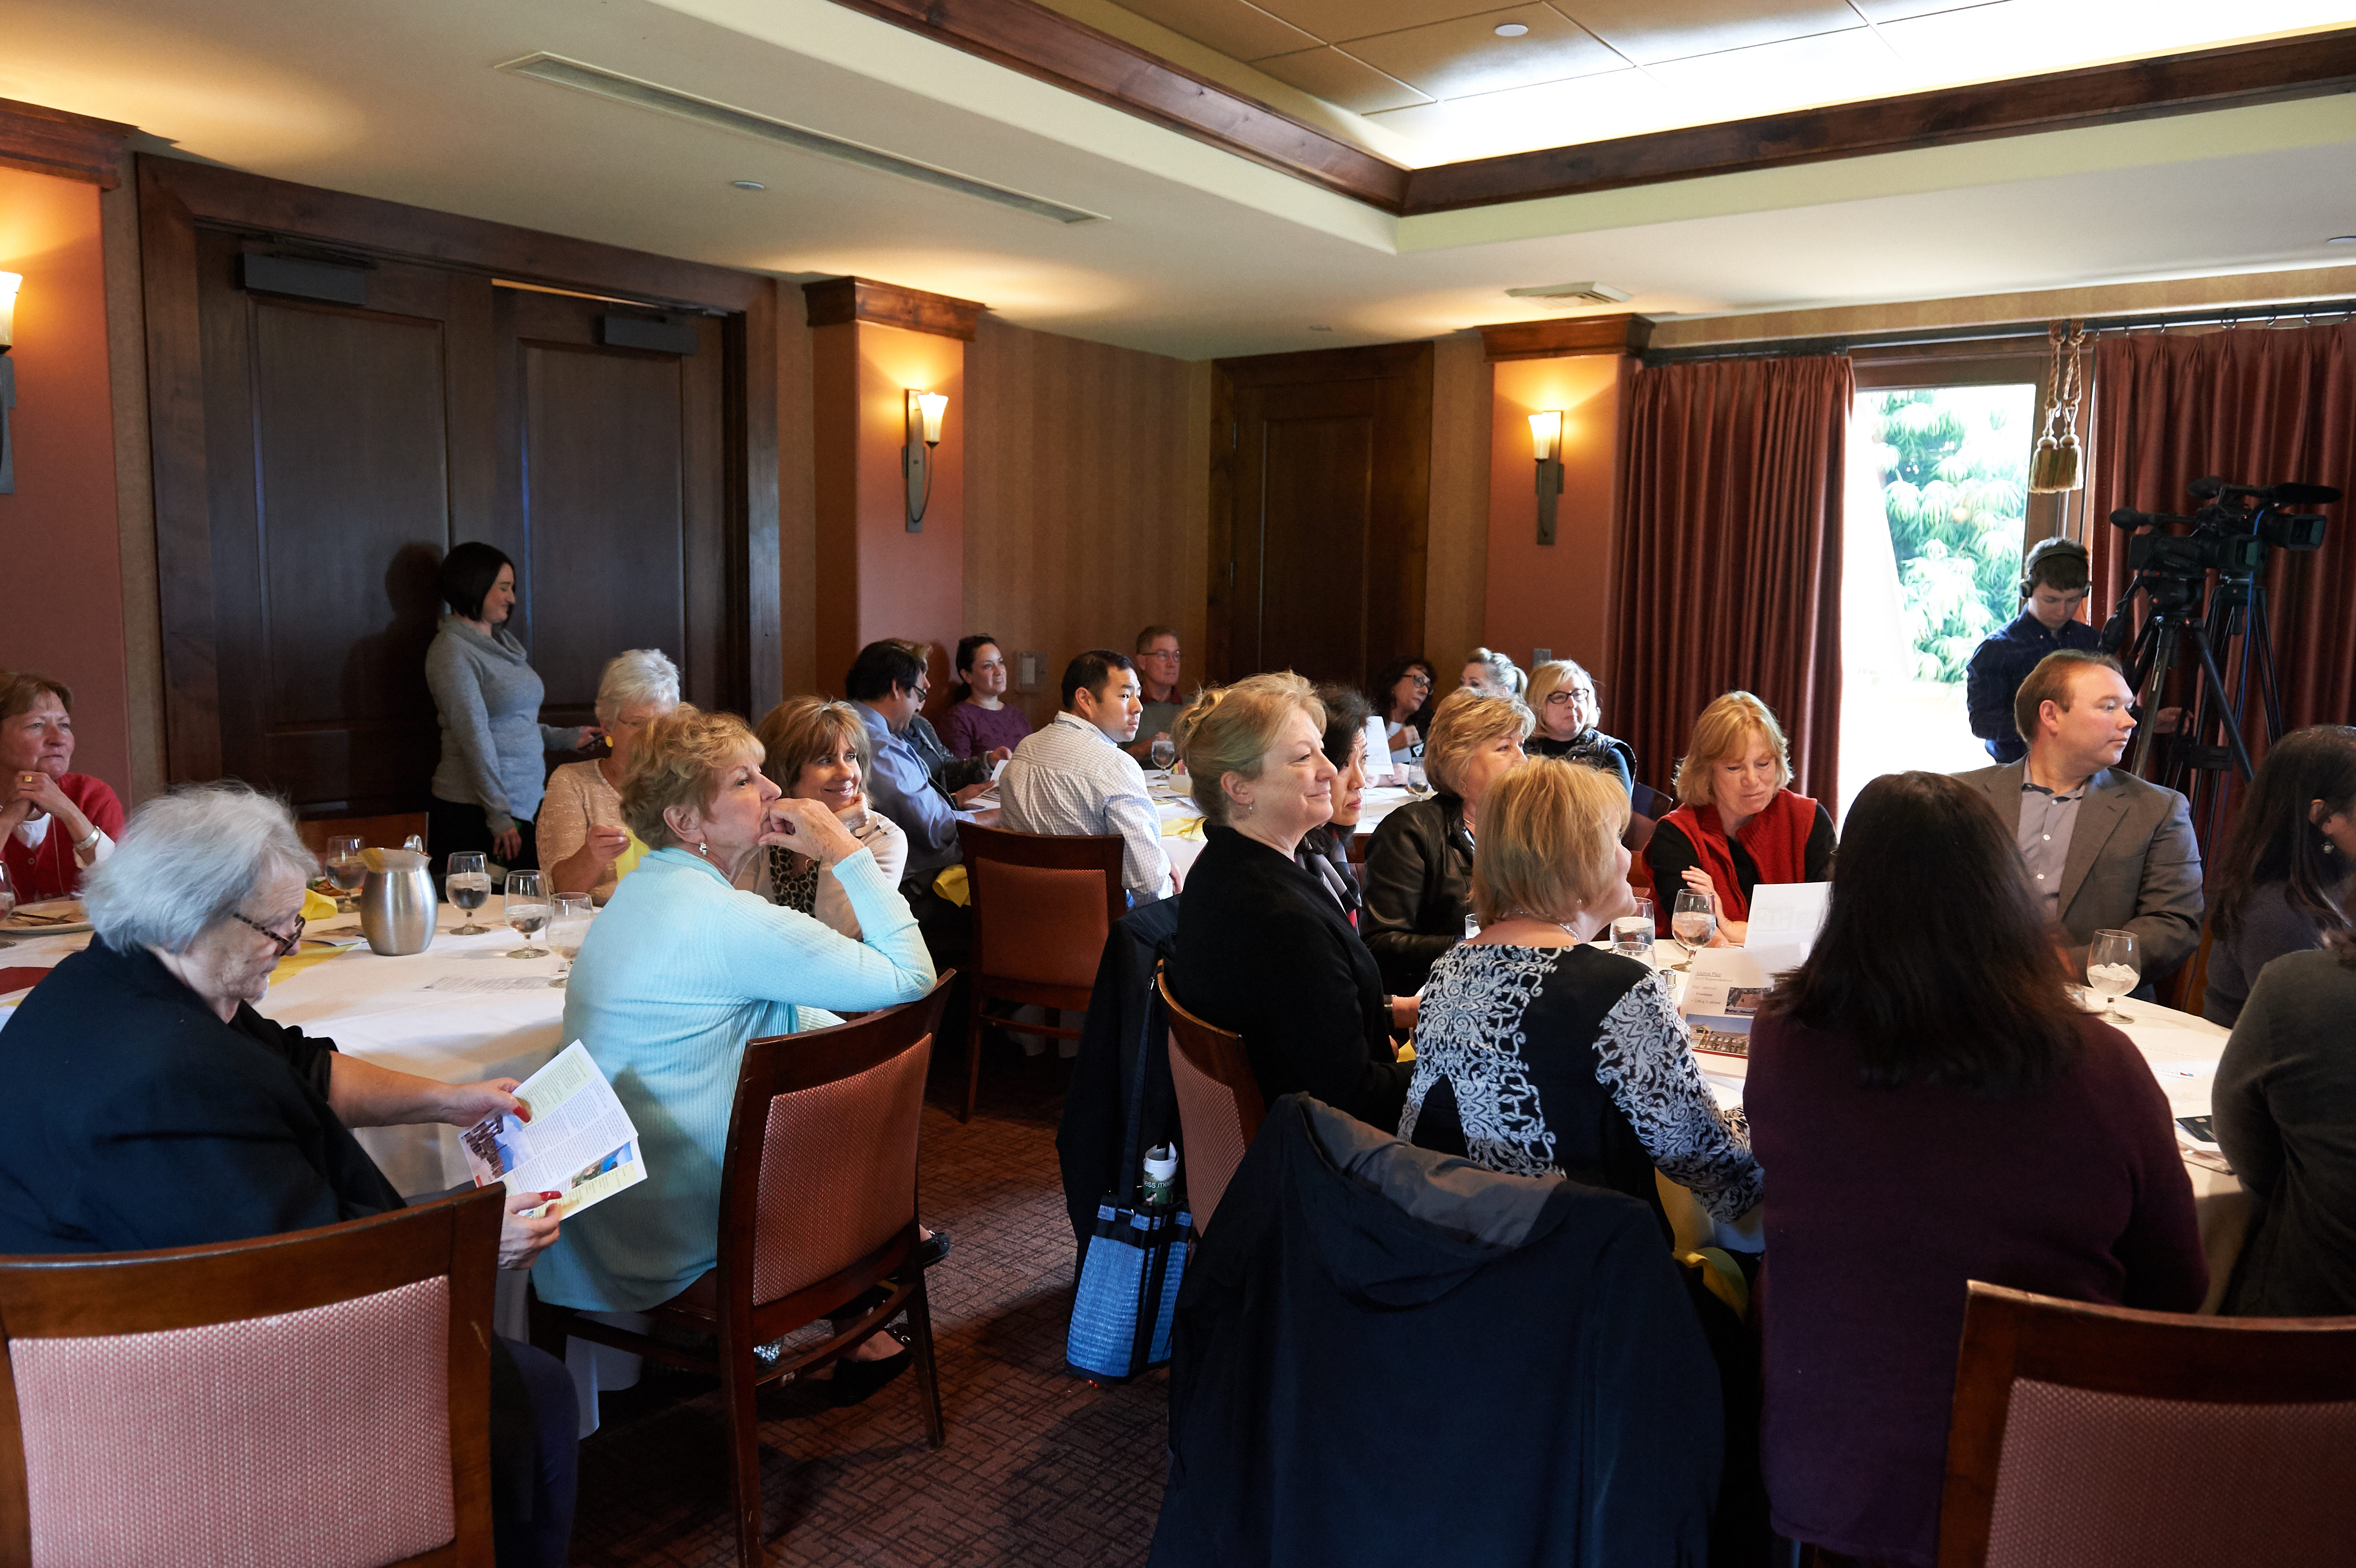 Noontime Novato Chamber Networking Marin Country Club Business Growth Pini Smart Carrie Scrimshire Leaders